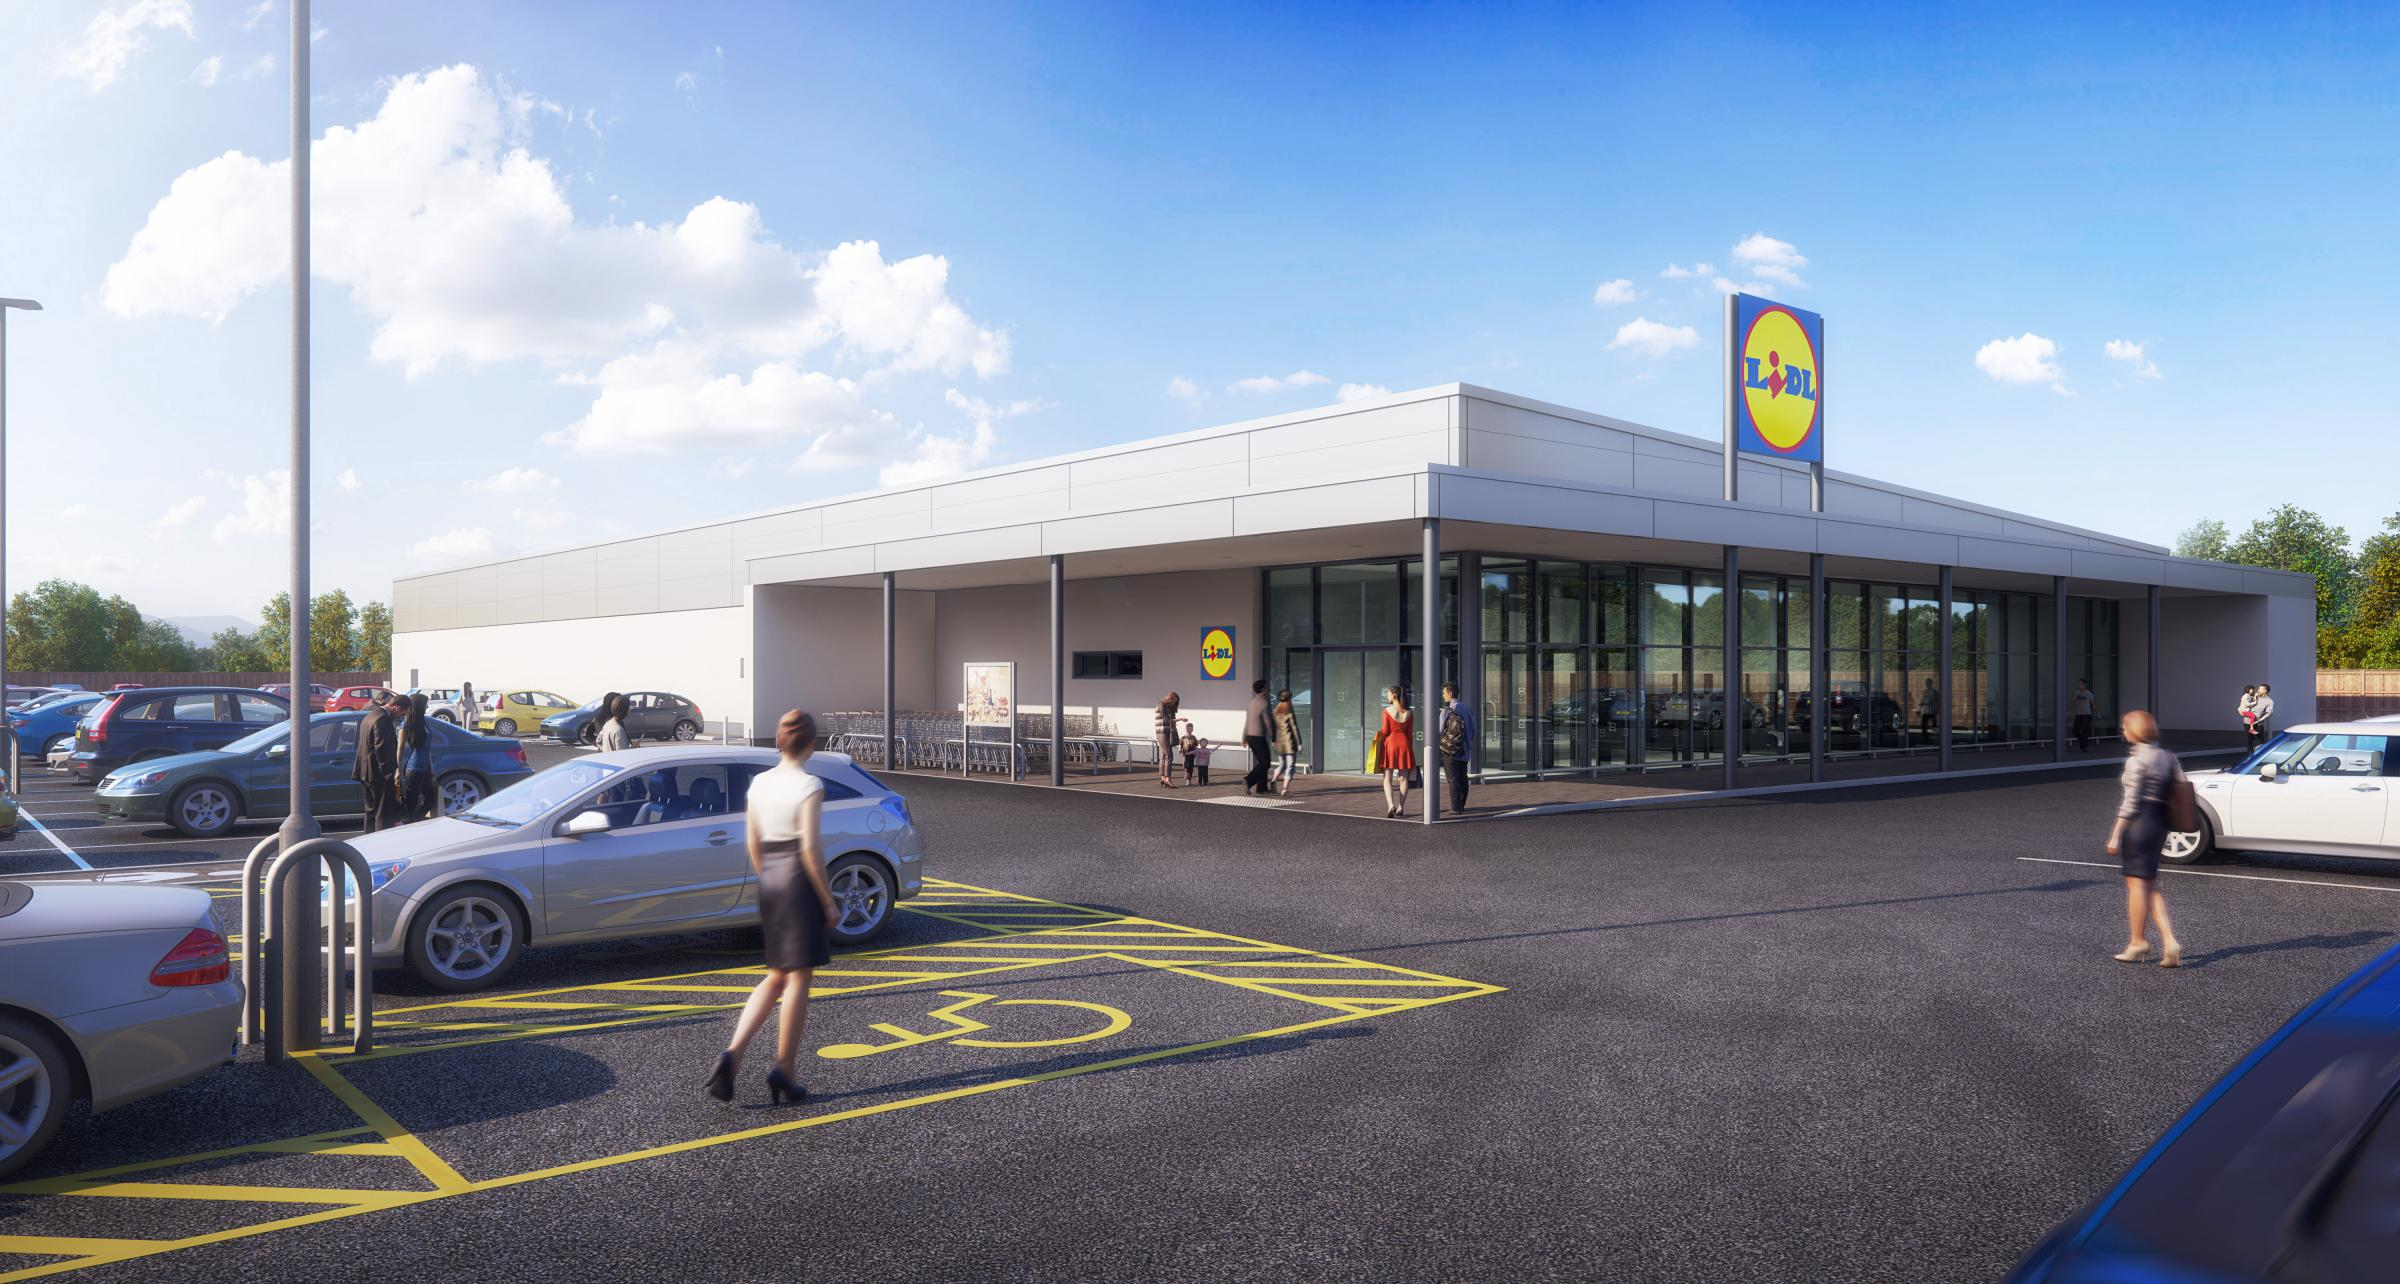 A CGI image of a typical Lidl store